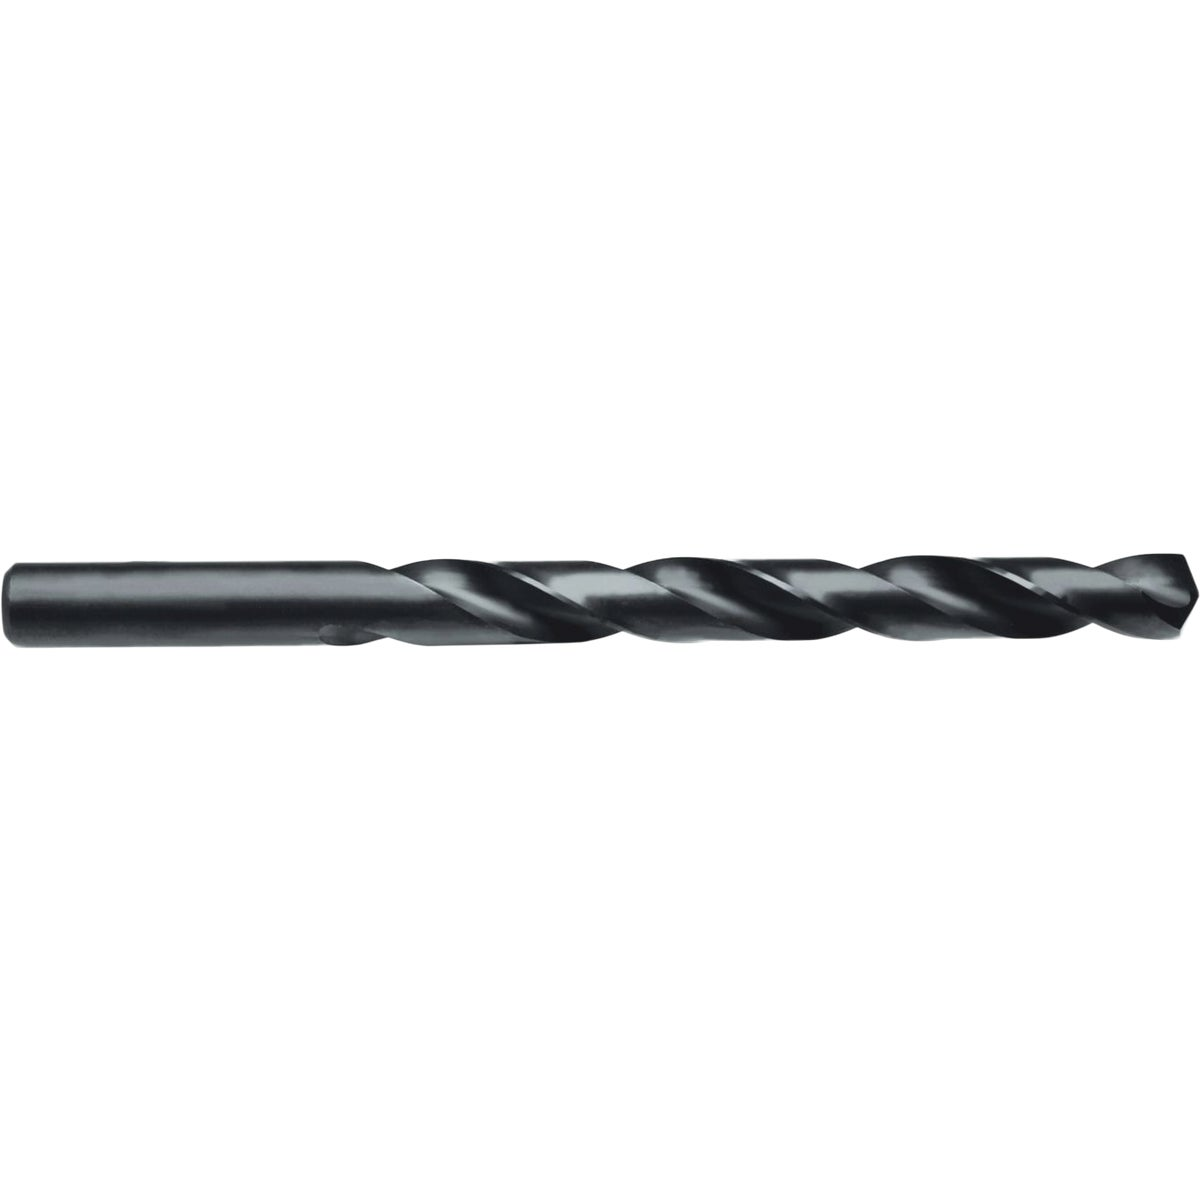 "3/32"" BLACK OXIDE BIT - DW1106 by DeWalt"